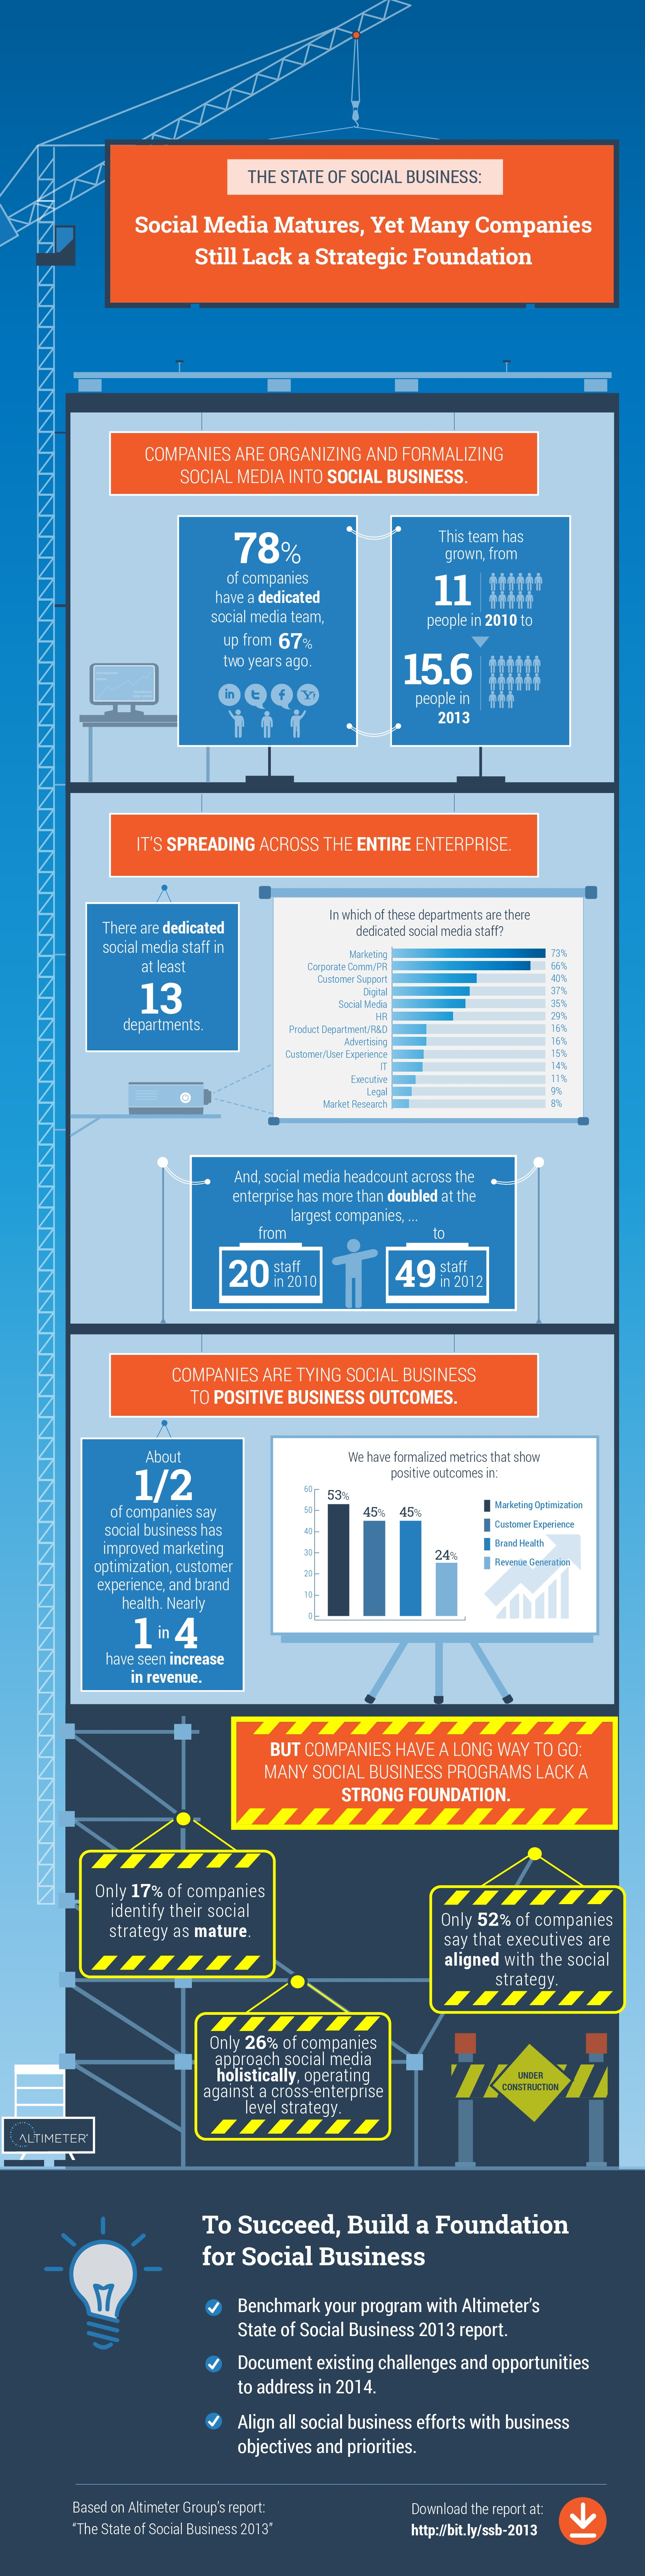 The State of Social Business:  Social Media Matures, Yet Many Companies Still Lack a Strategic Foundation - [Infographic]